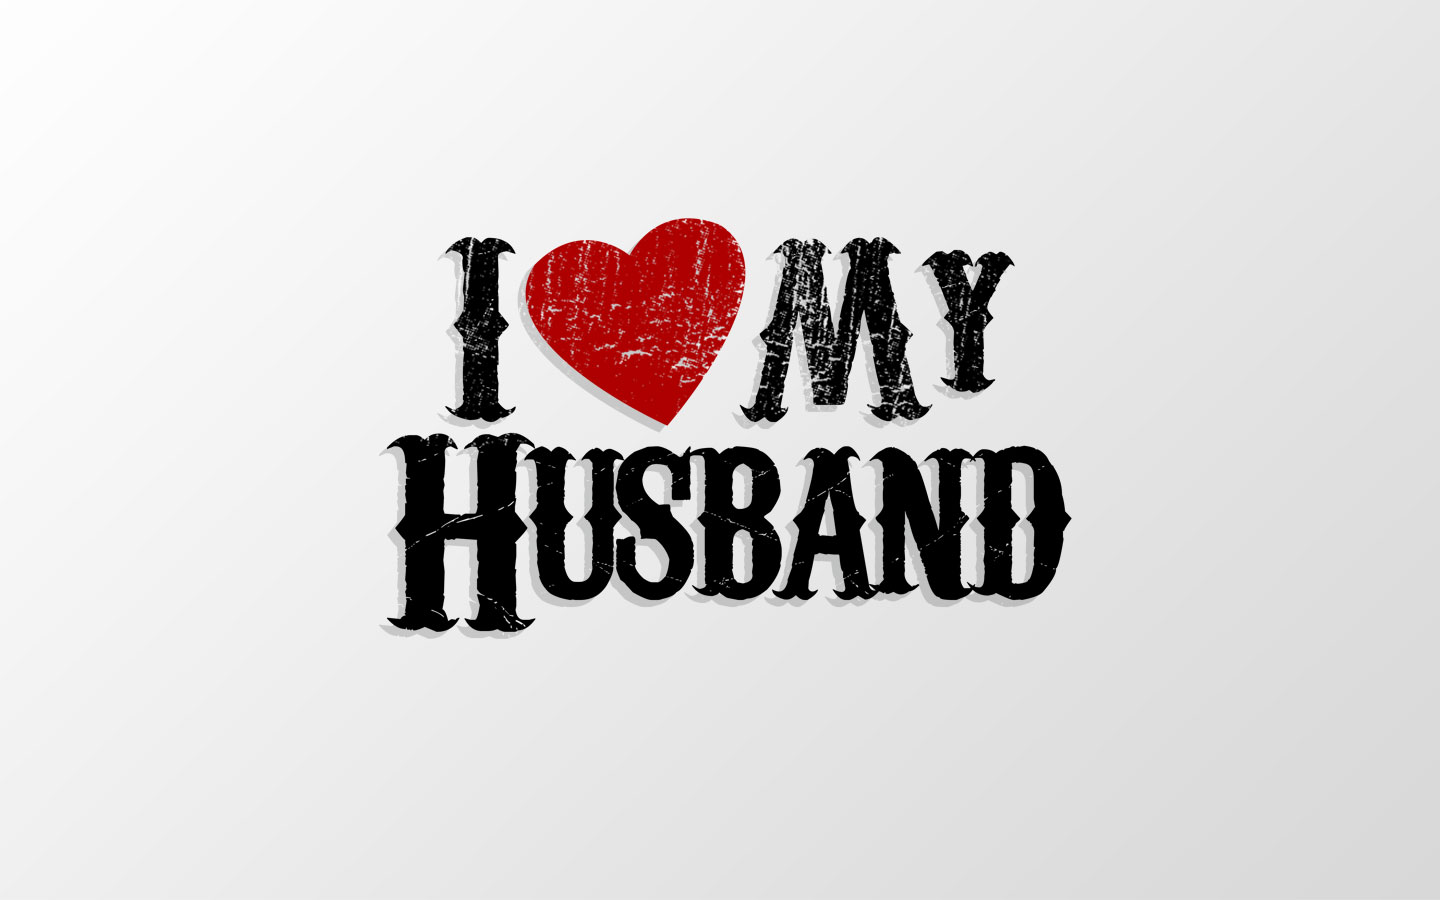 I Love My Husband Wallpaper   Christian Wallpapers and 1440x900